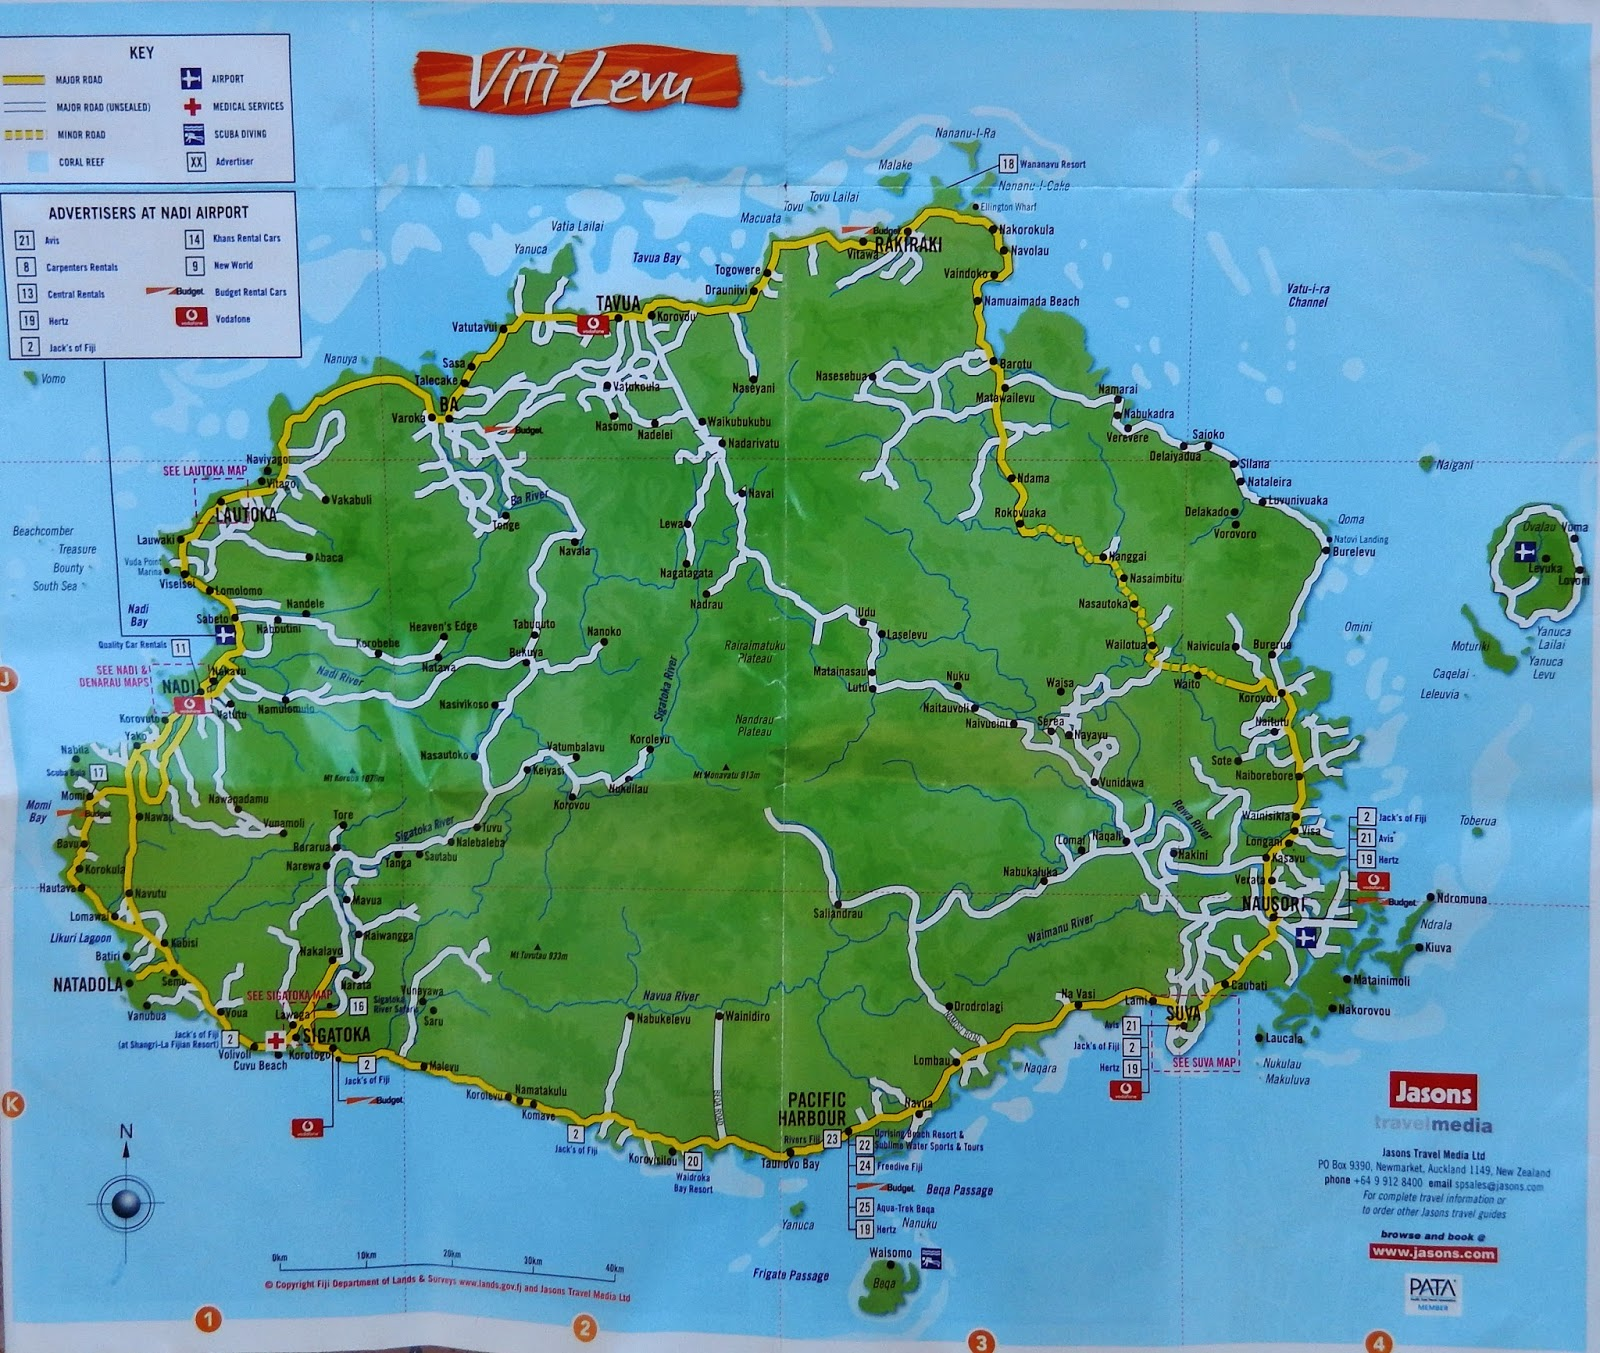 Bill and pats 2014 world cruise wednesday february 5th lautoka wednesday february 5th lautoka fiji map of viti levu the largest and most populated island of fiji gumiabroncs Gallery